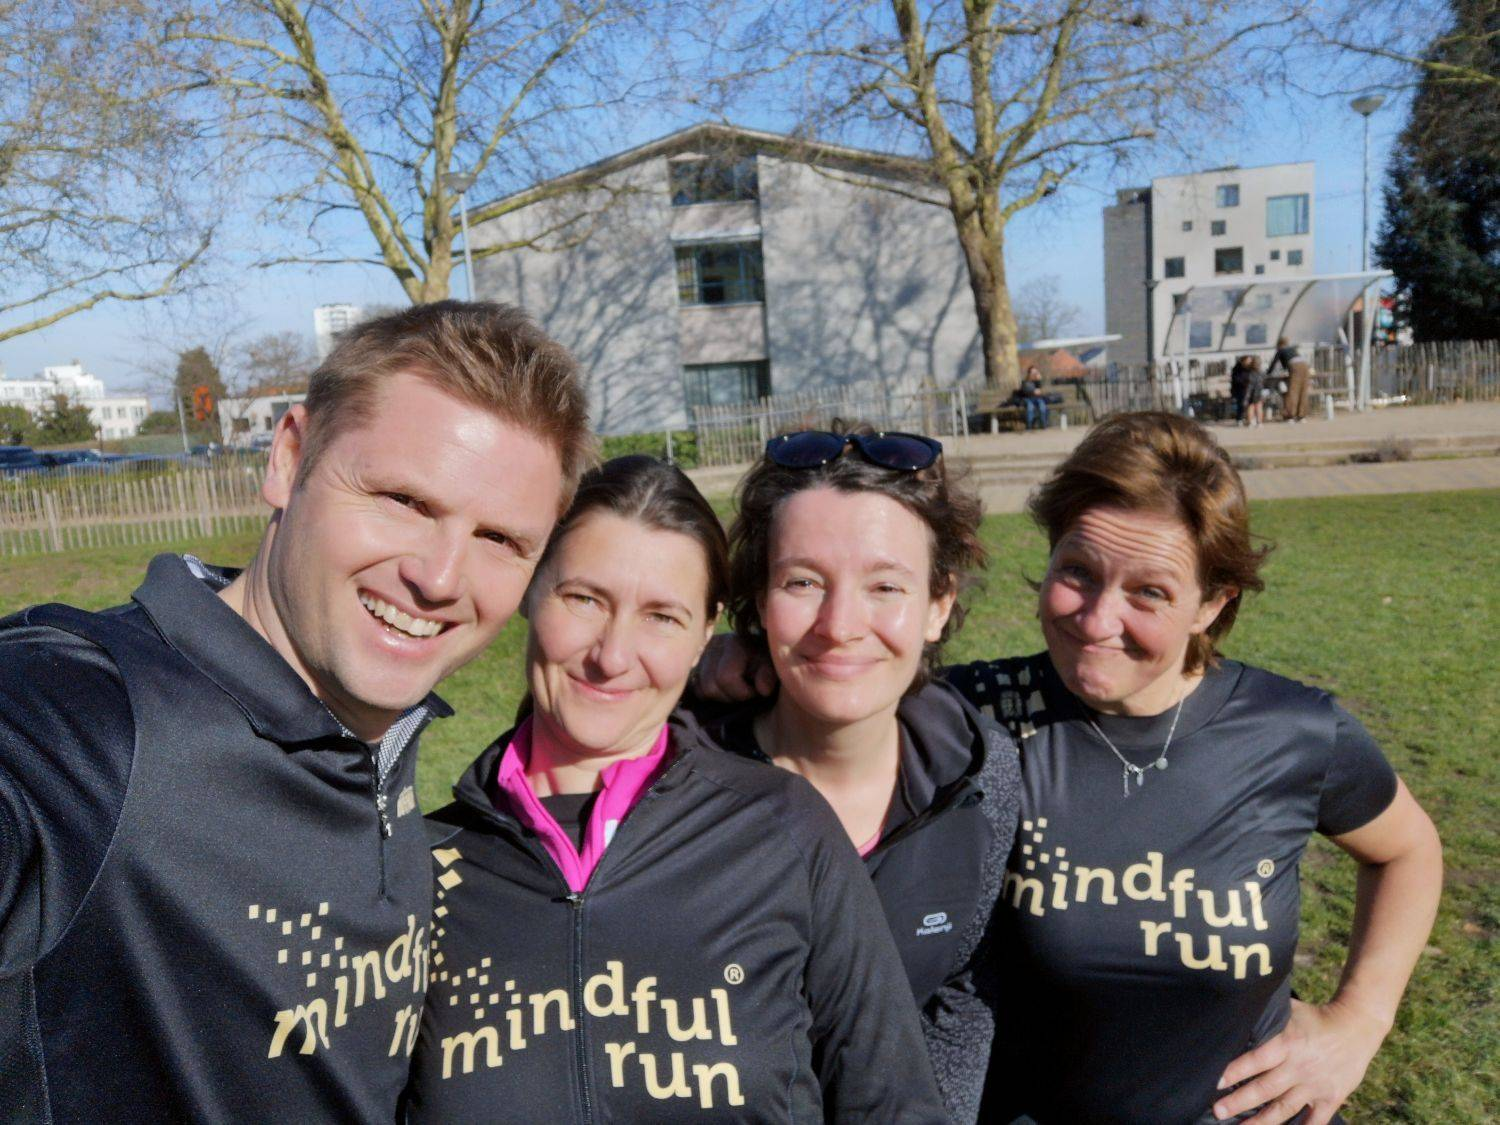 Bijscholing Mindful Run